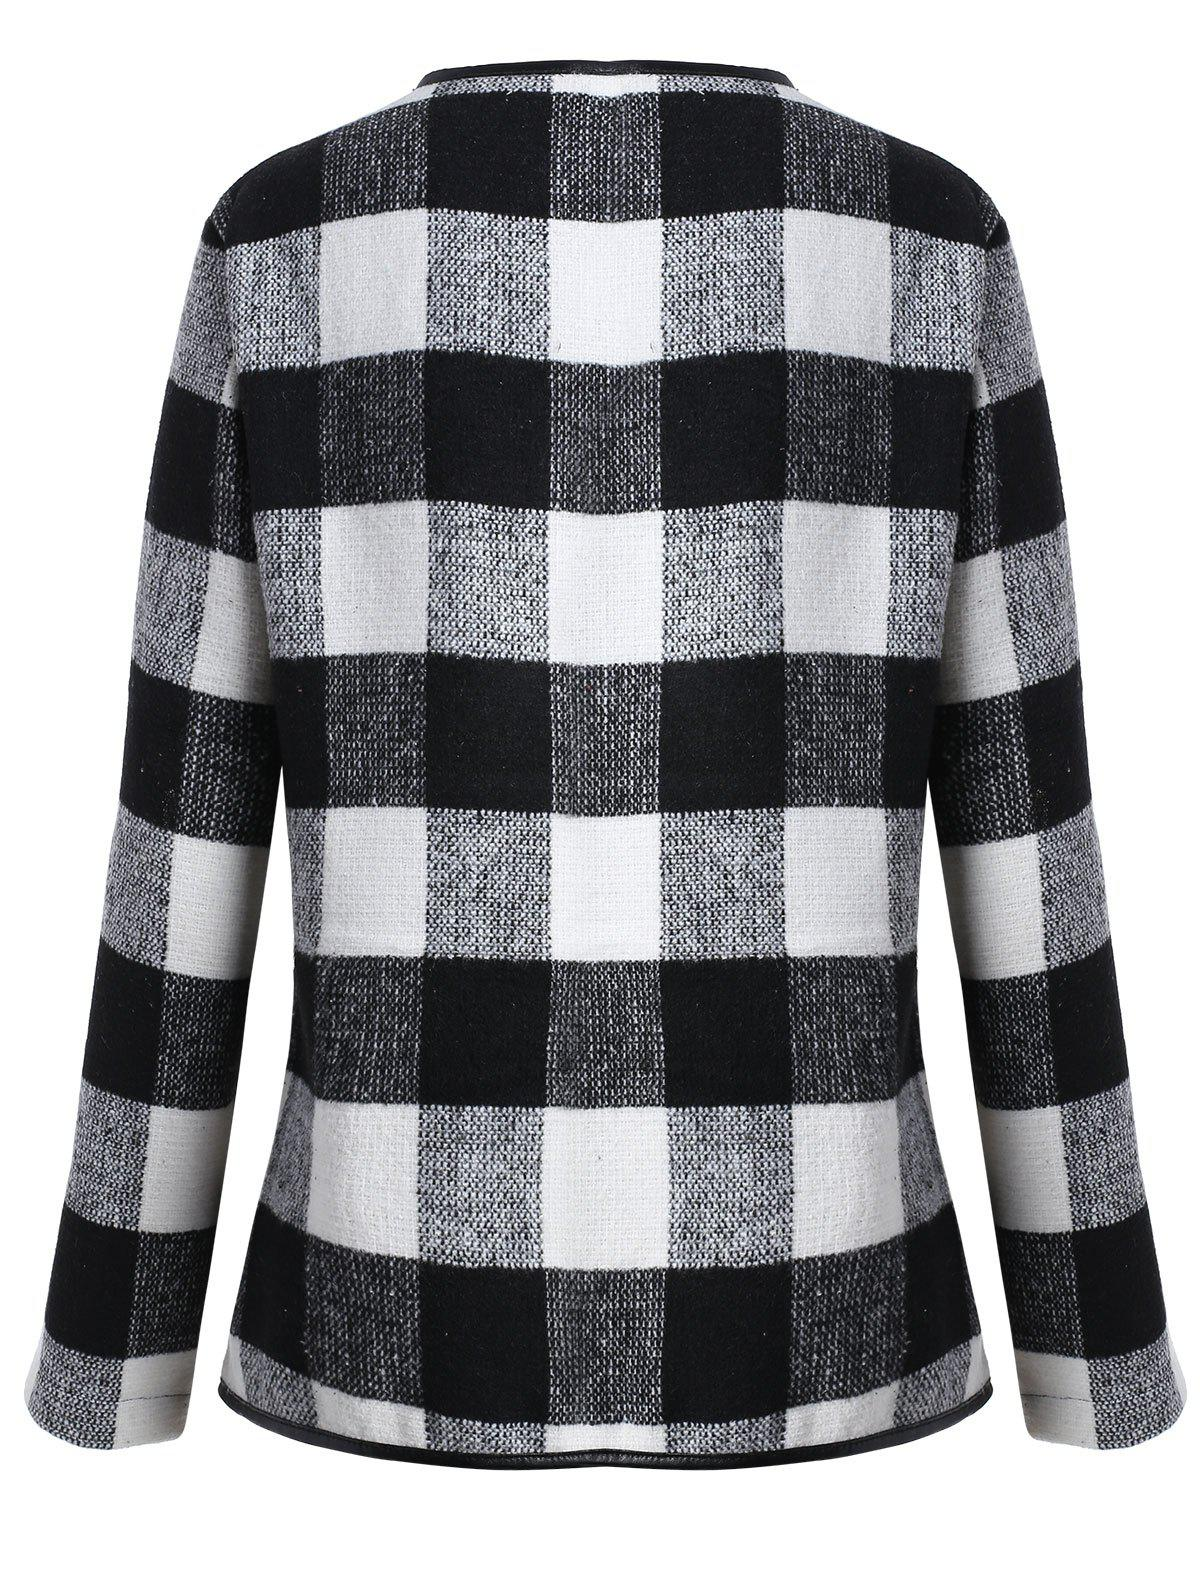 Drape Plus Size Plaid Coat - BLACK WHITE XL